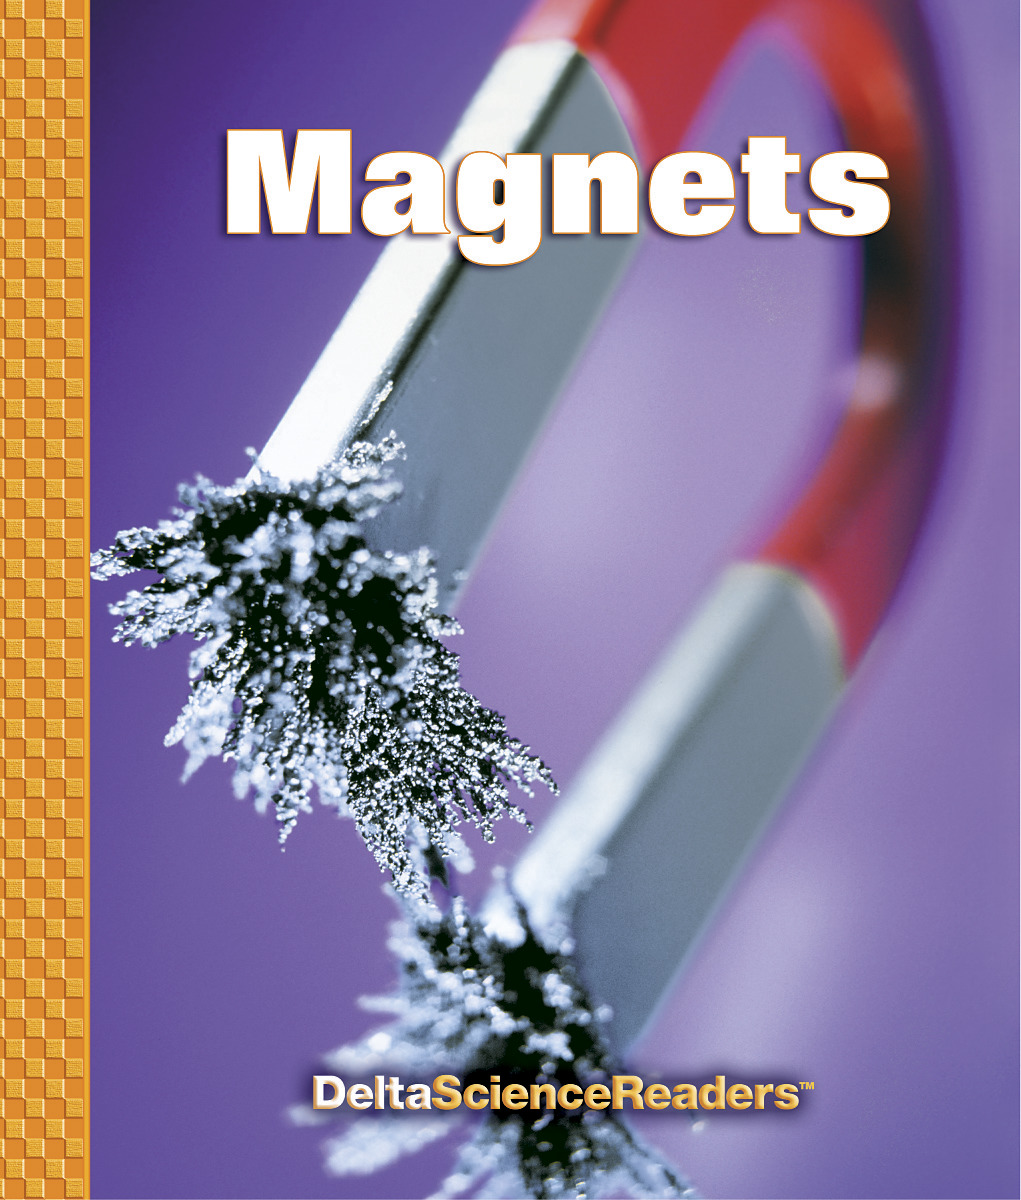 Delta Science Readers: Magnets